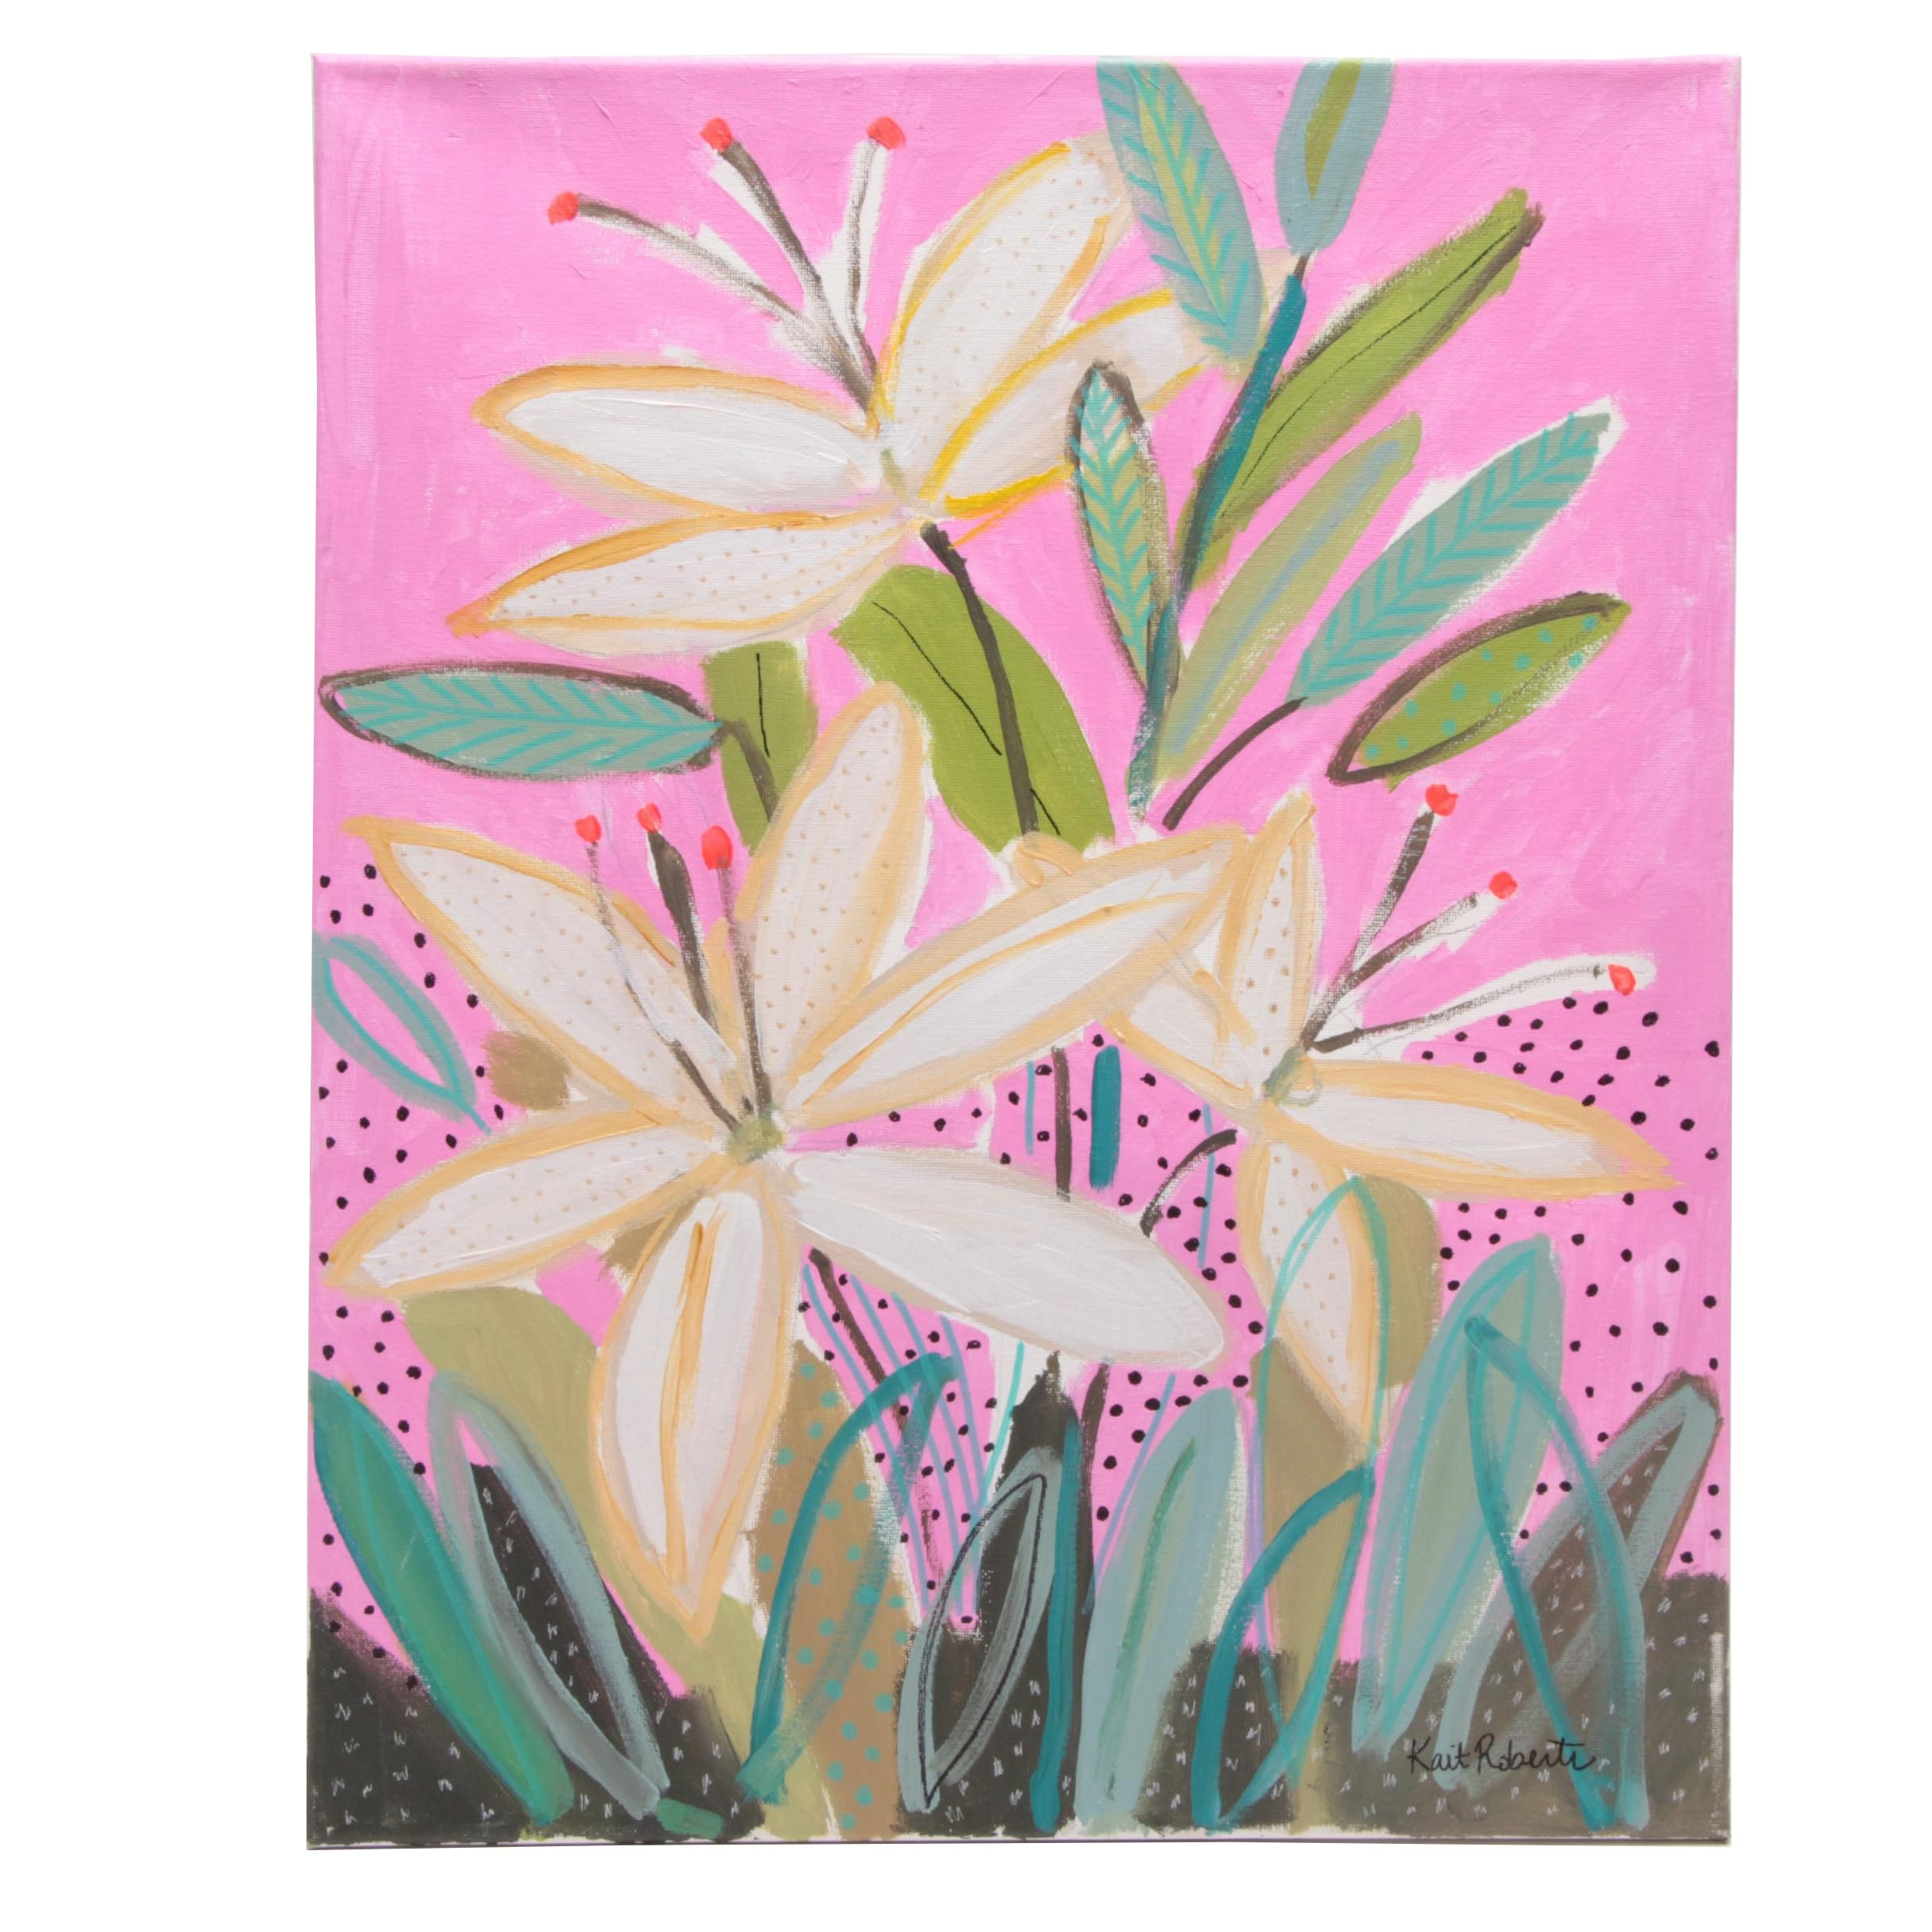 """Kait Roberts Acrylic Painting """"Let's Root for Each Other"""""""